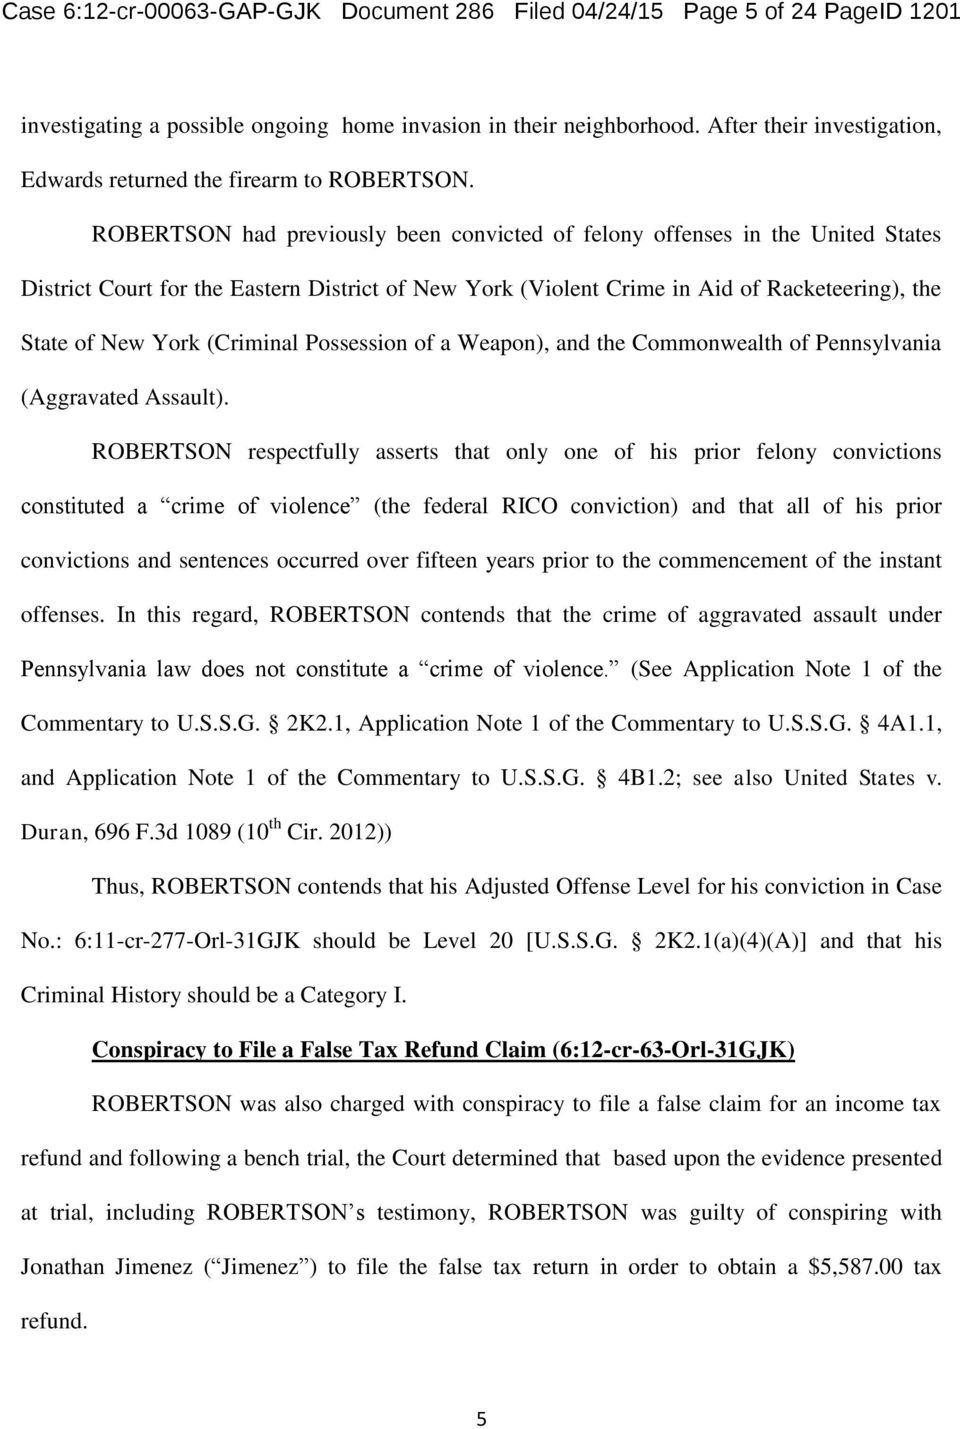 ROBERTSON had previously been convicted of felony offenses in the United States District Court for the Eastern District of New York (Violent Crime in Aid of Racketeering), the State of New York